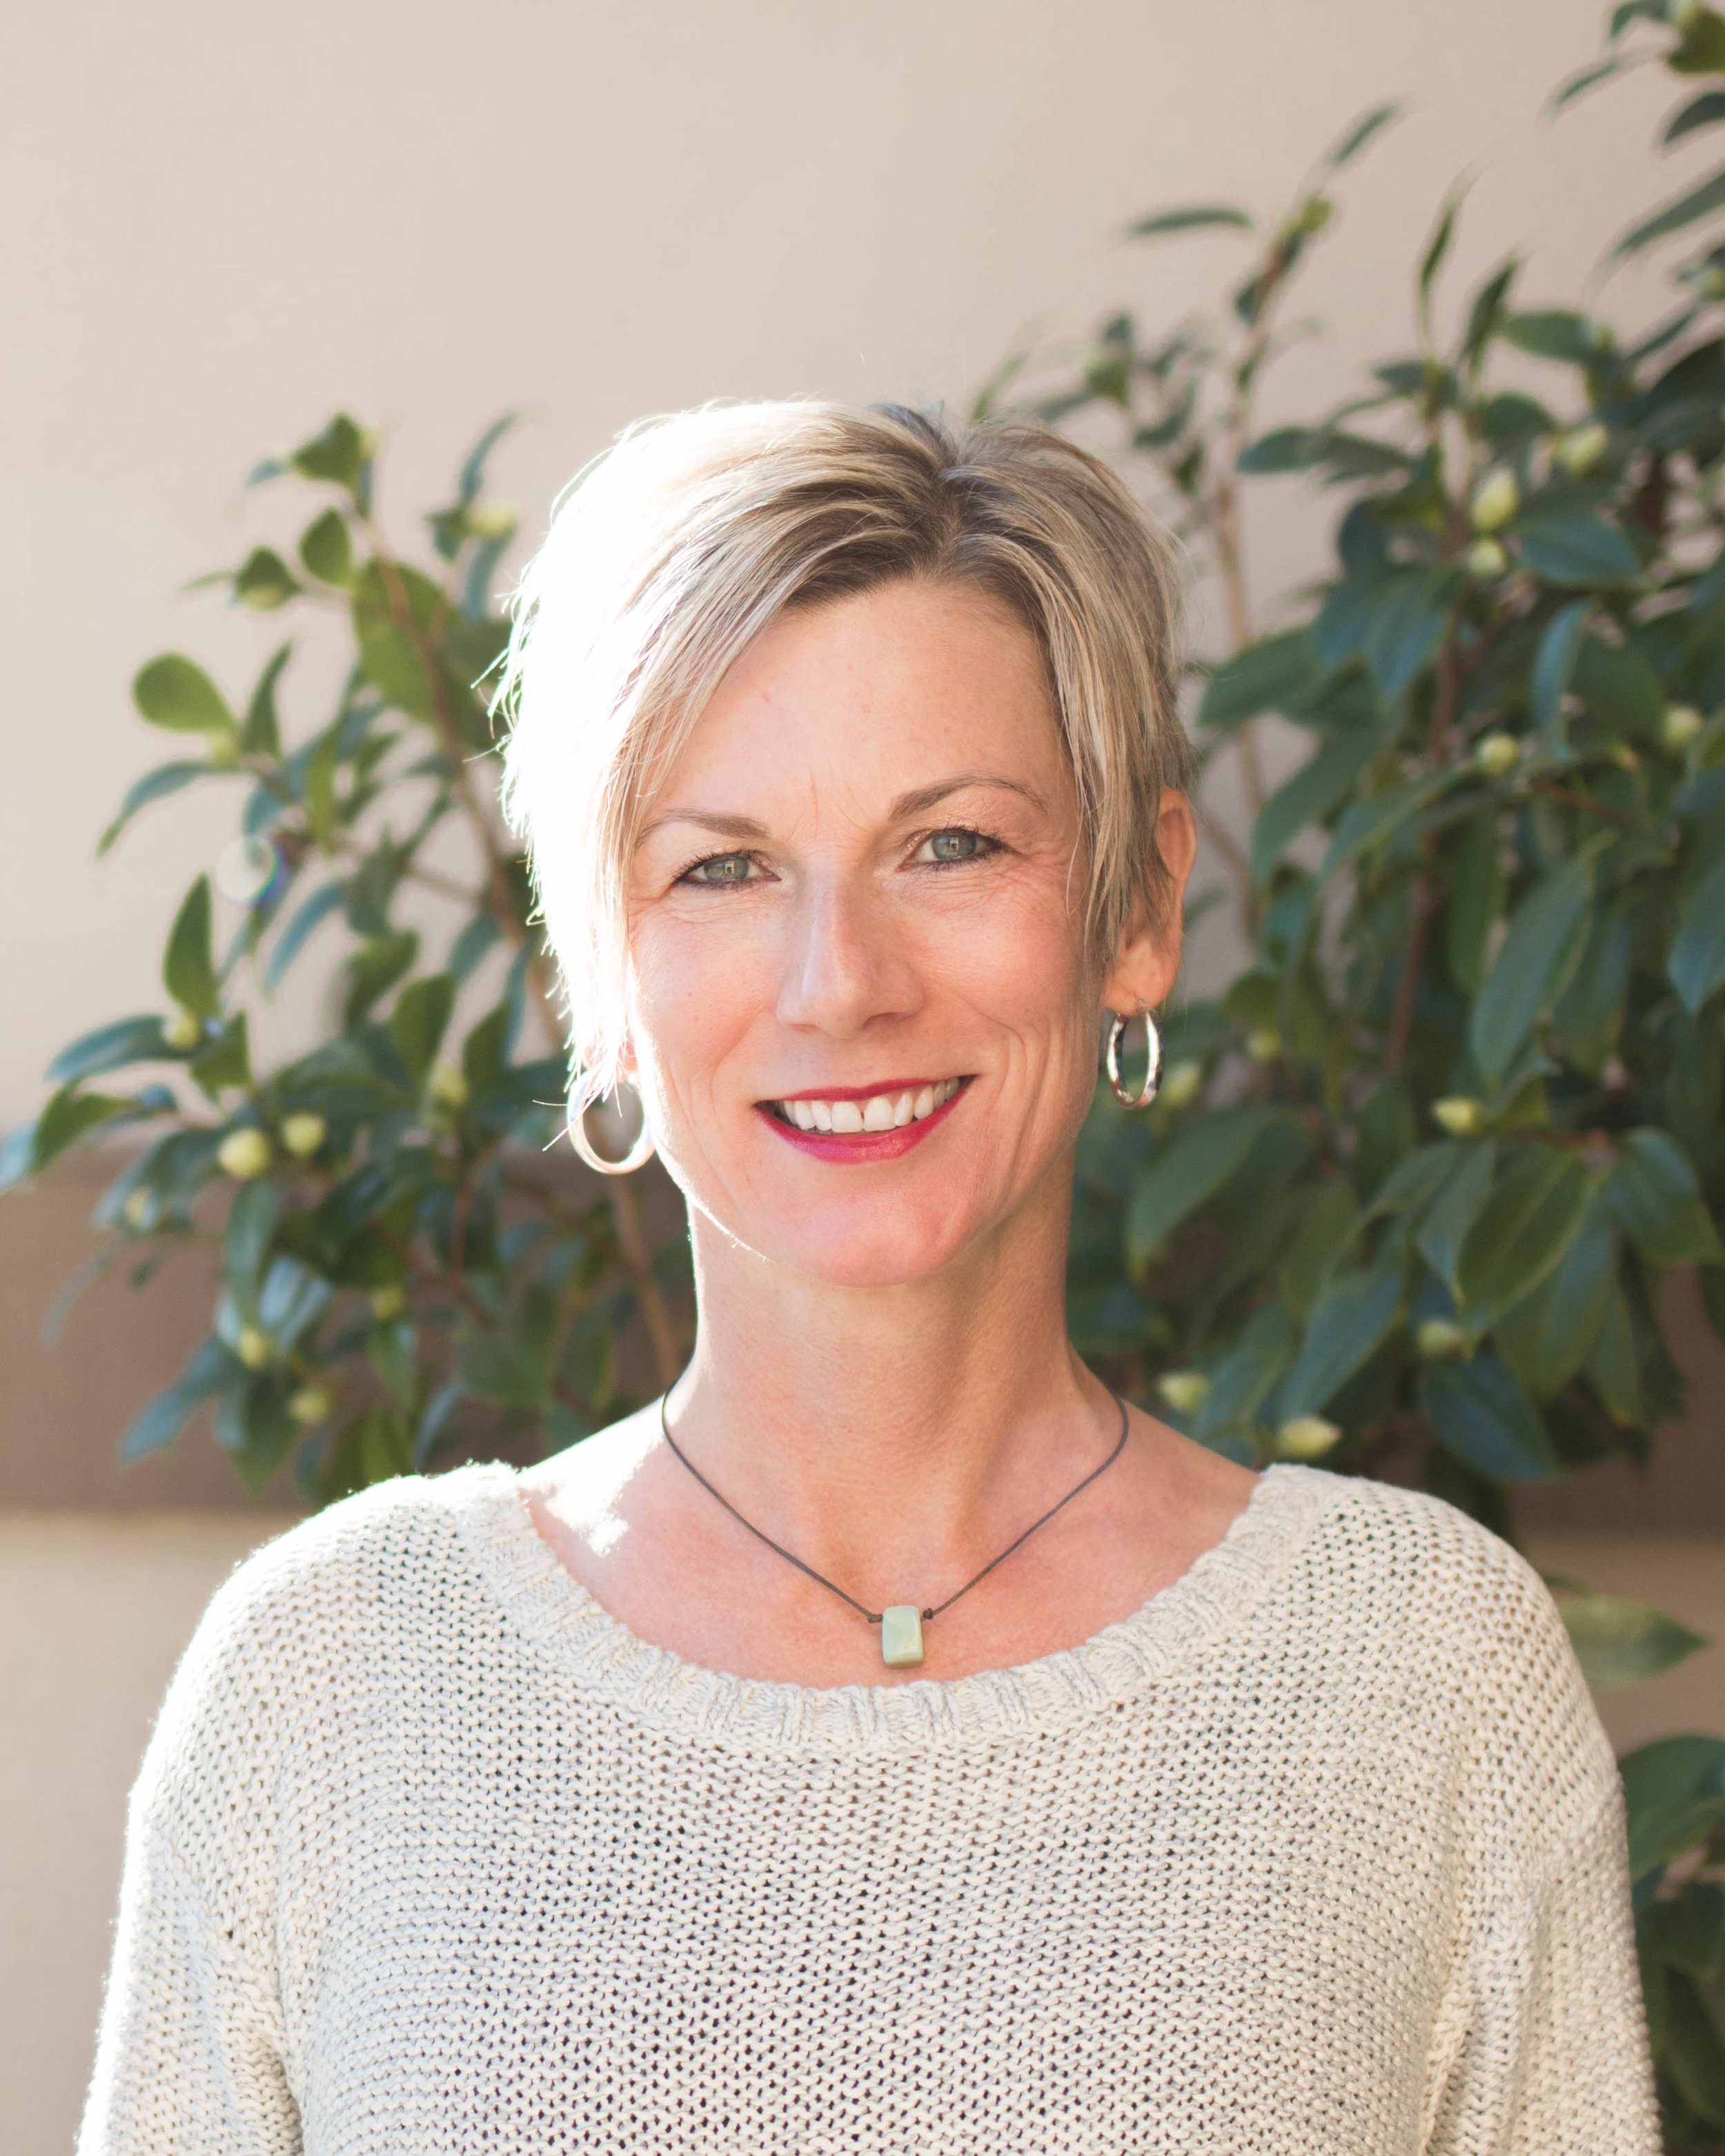 Jennifer Mclane, C.N.P.  Jennifer McClane is a Nurse Practitioner who has worked with Dr. Pete since 2001.  Jennifer lives in Morgan Hill with her husband and two children. She enjoys cooking, skiing and hiking.   Click here to learn more about Nurse Practitioners.